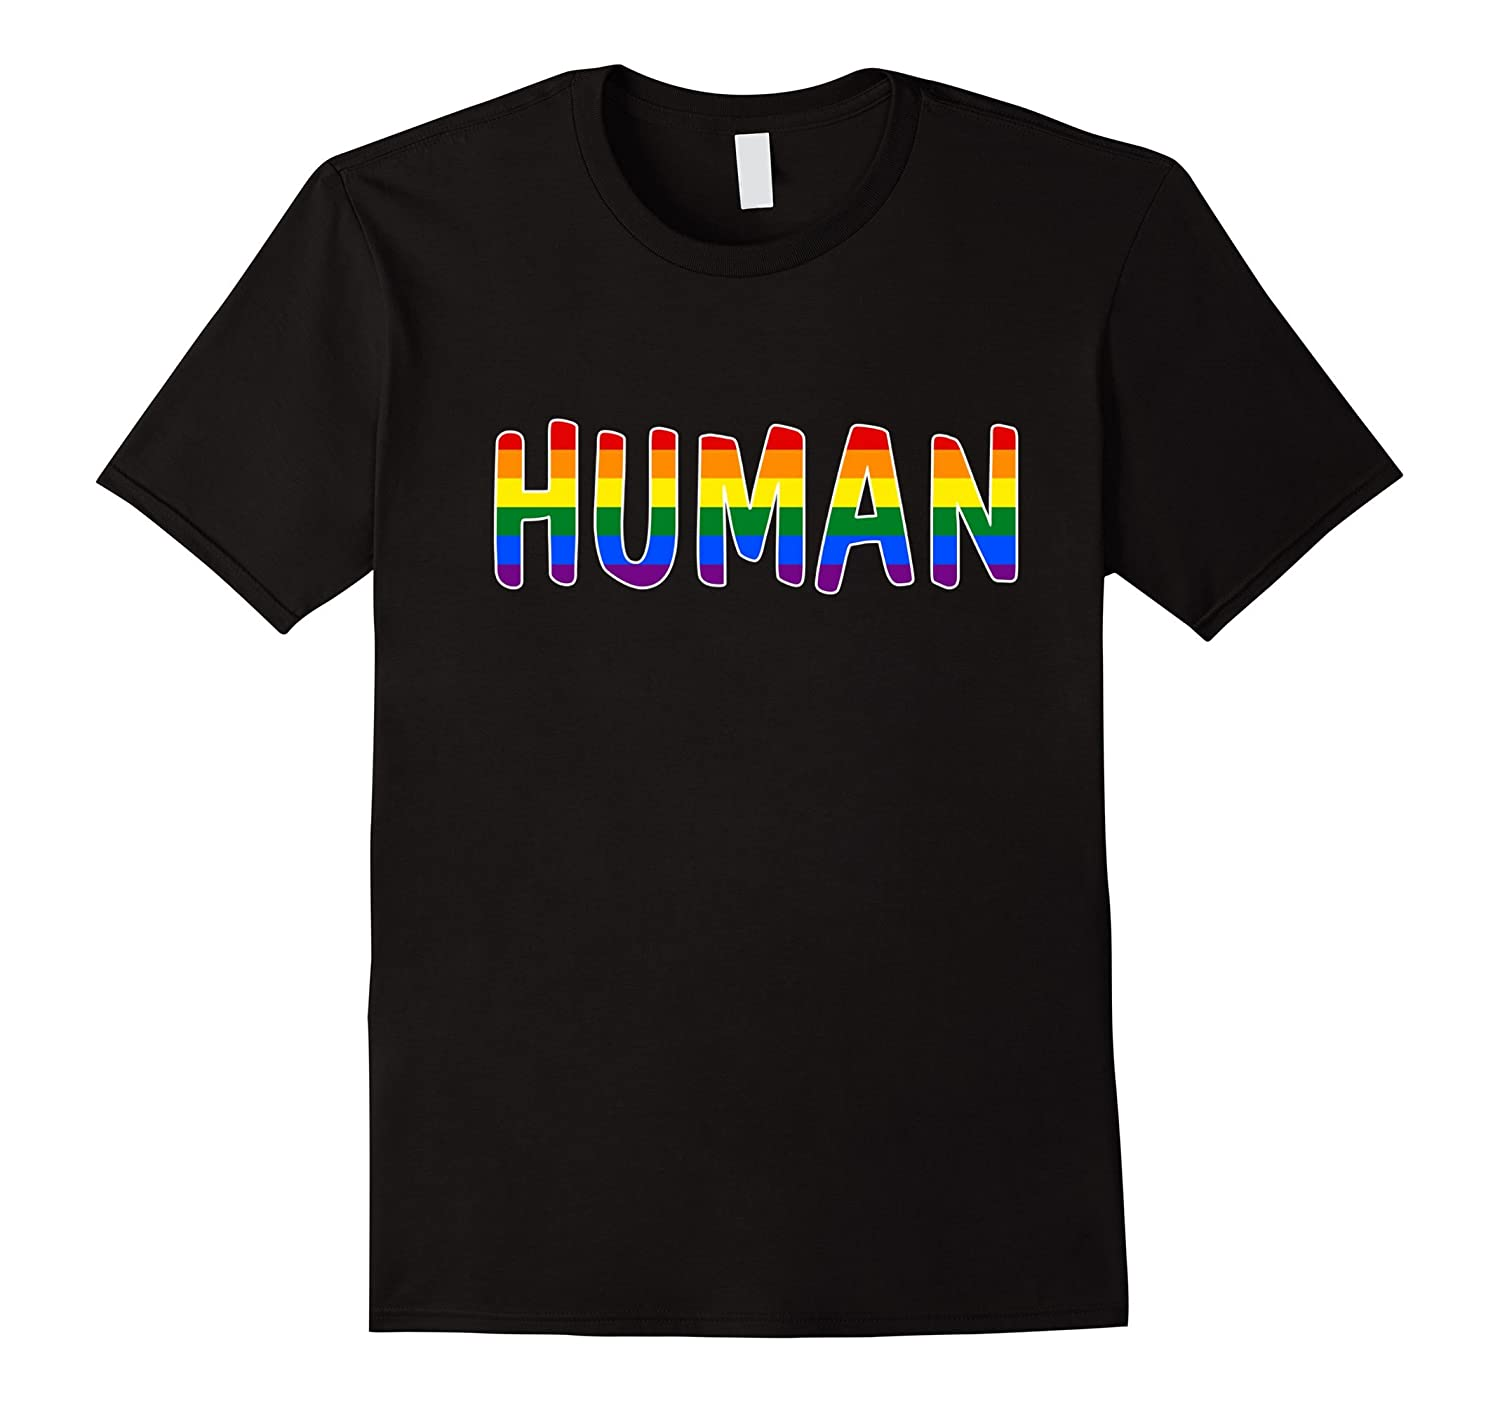 Human LGBT Lesbian Gay Bisexual Transgender Support Shirt-Vaci